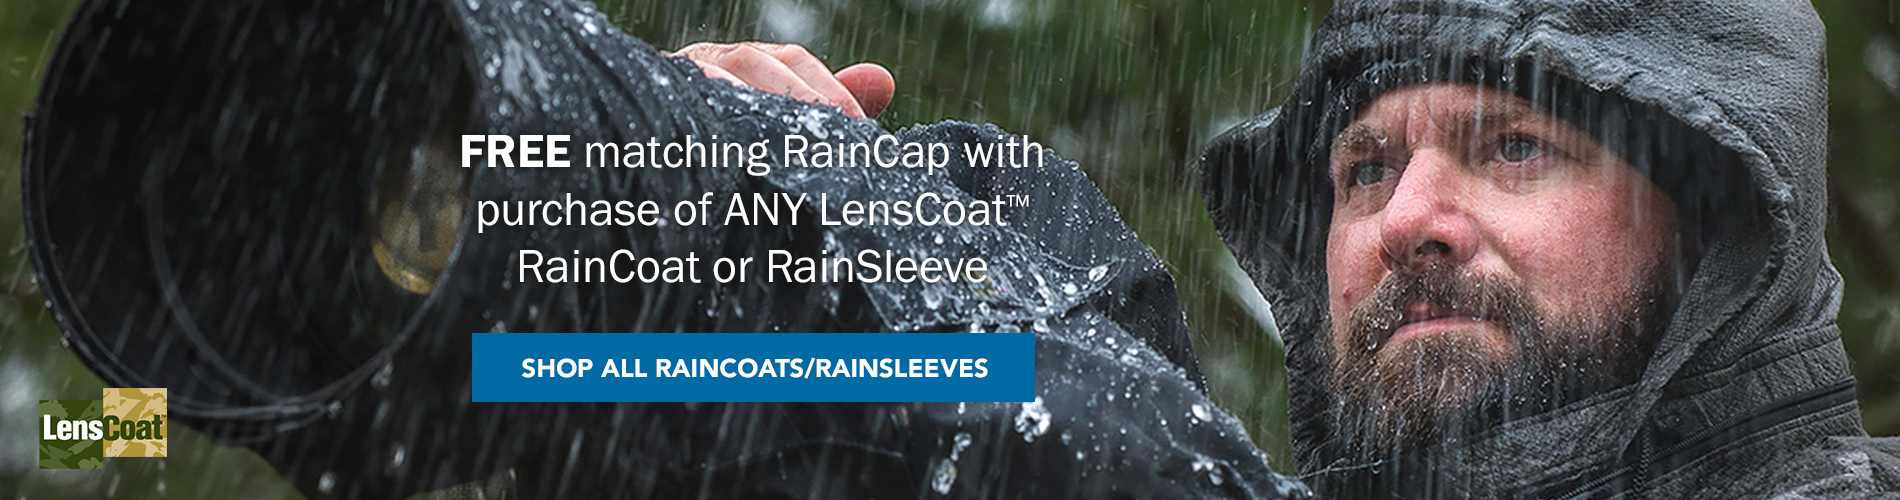 FREE matching RainCap with purchase of ANY LensCoat RainCoat or RainSleeve. Shop All RainCoats / RainSleeves >